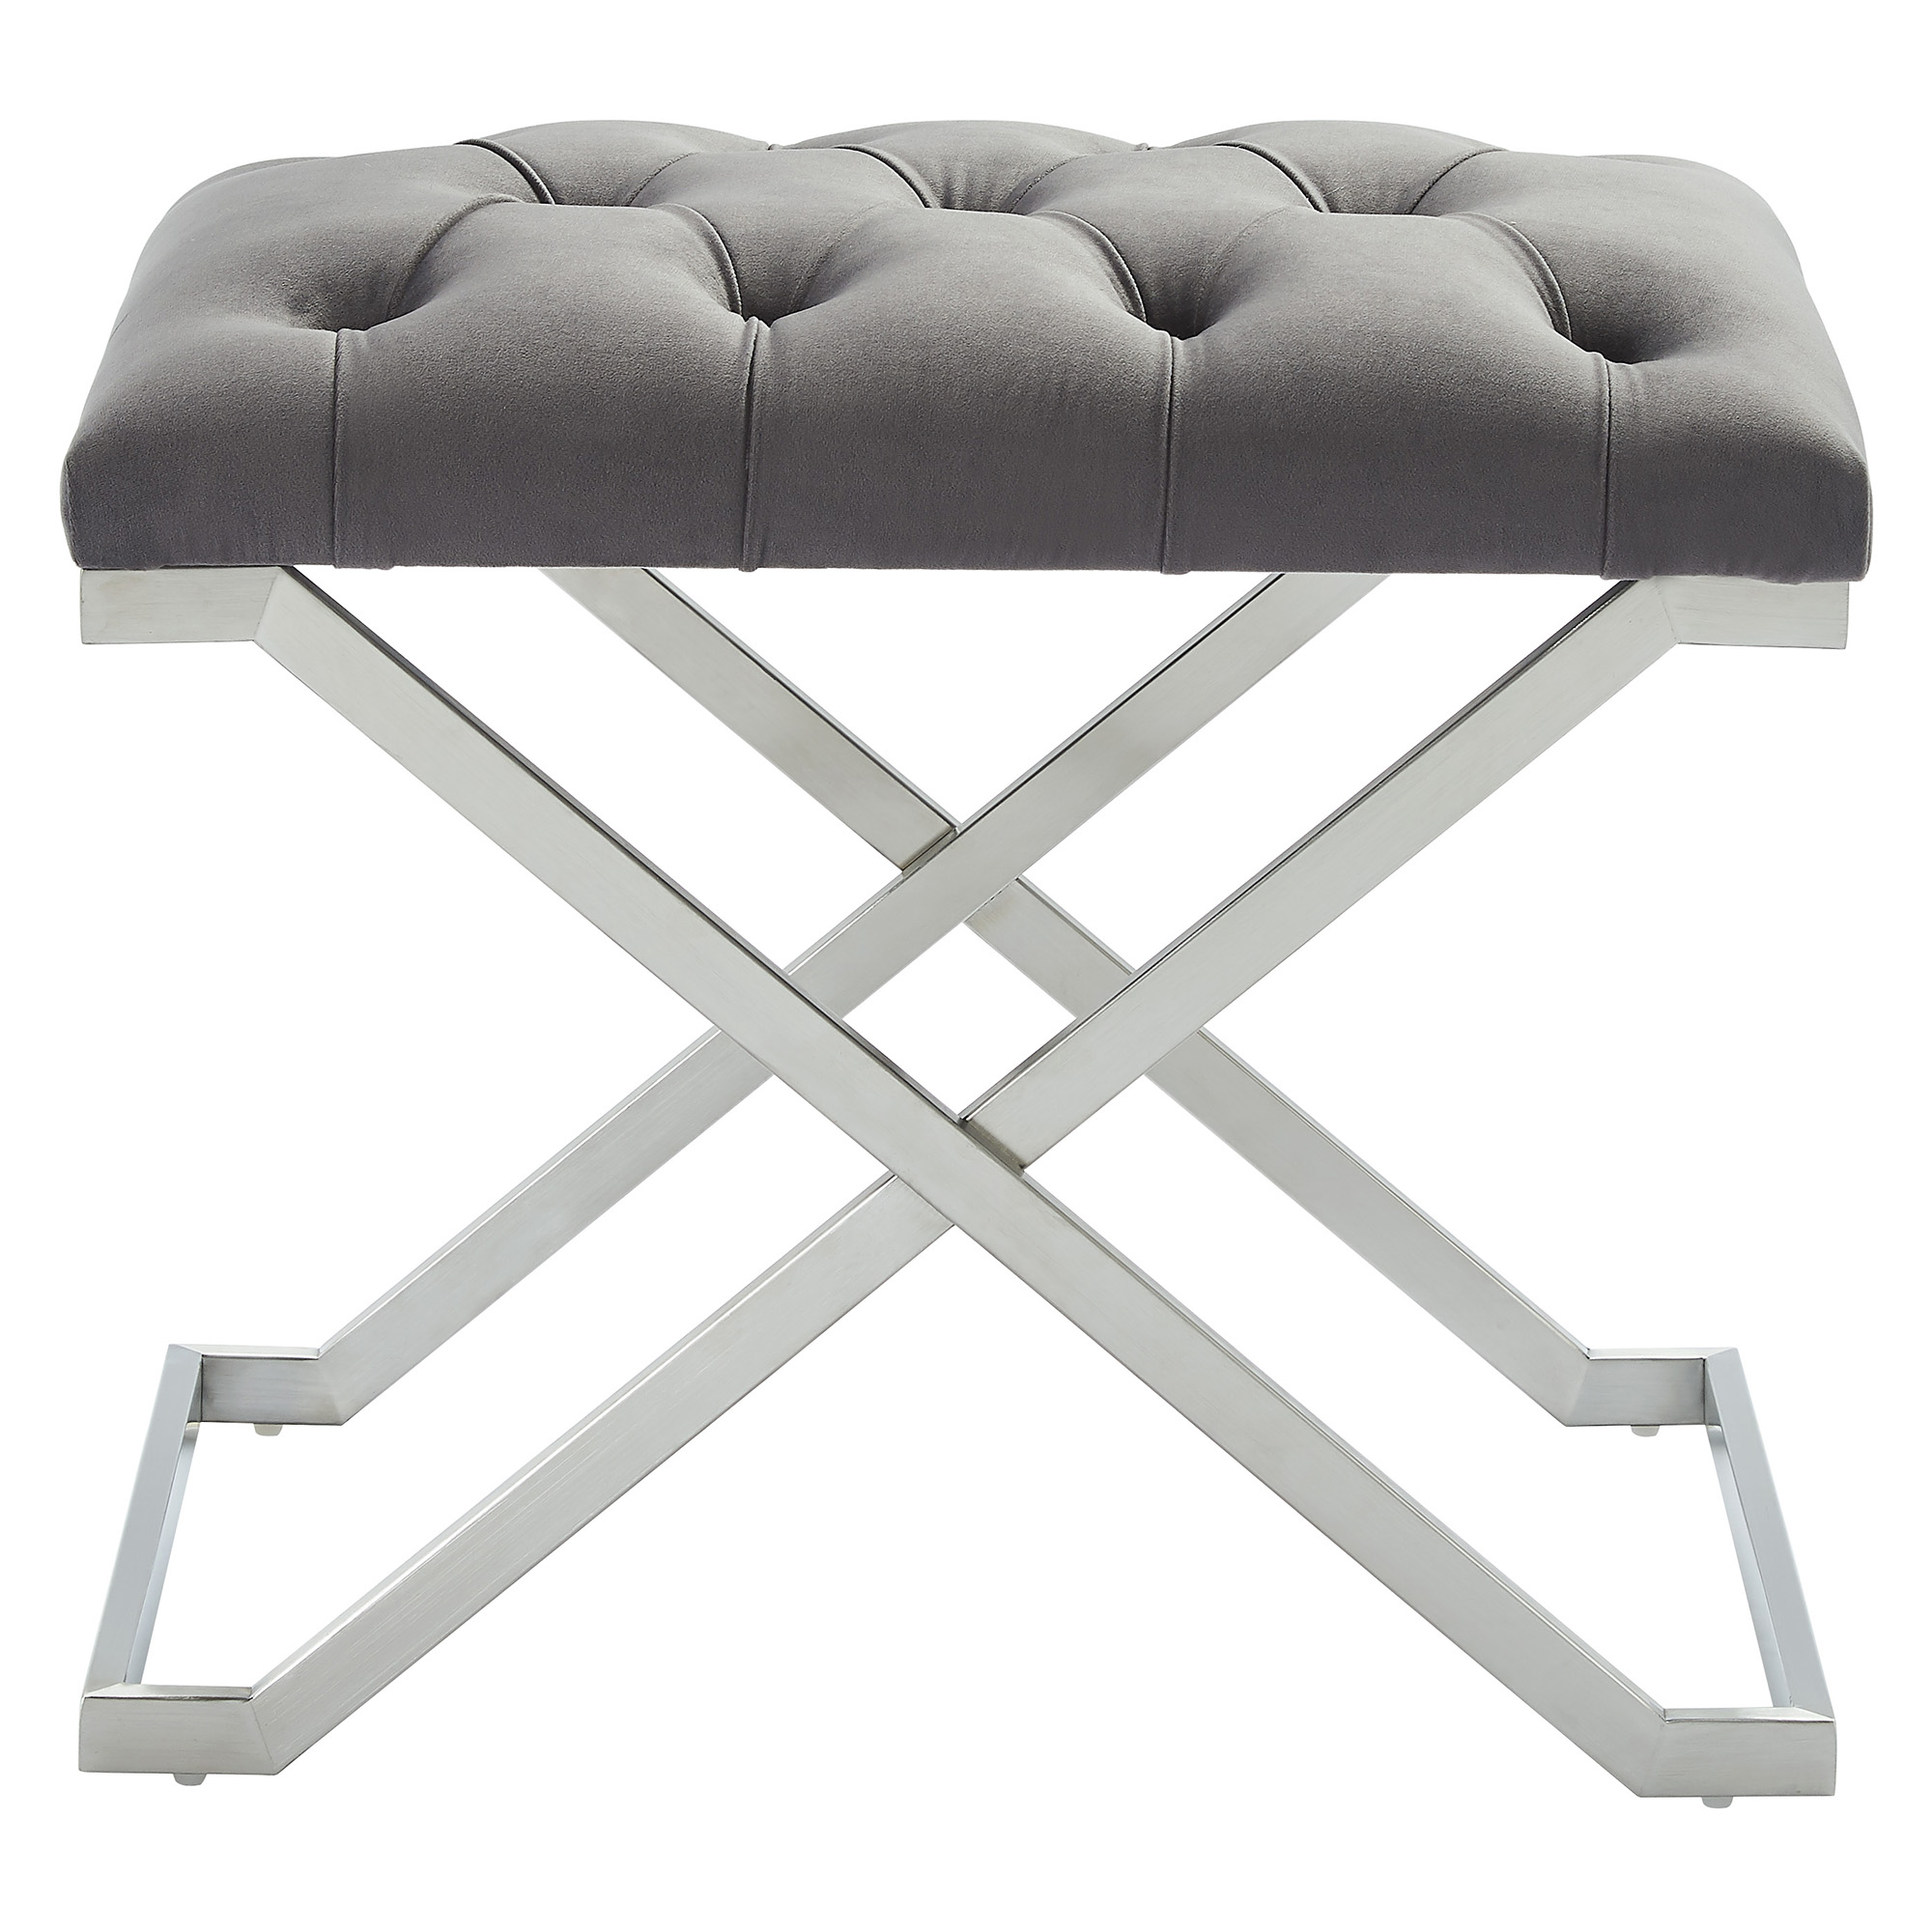 Contemporary Velvet & Stainless Steel Bench in Grey & Silver